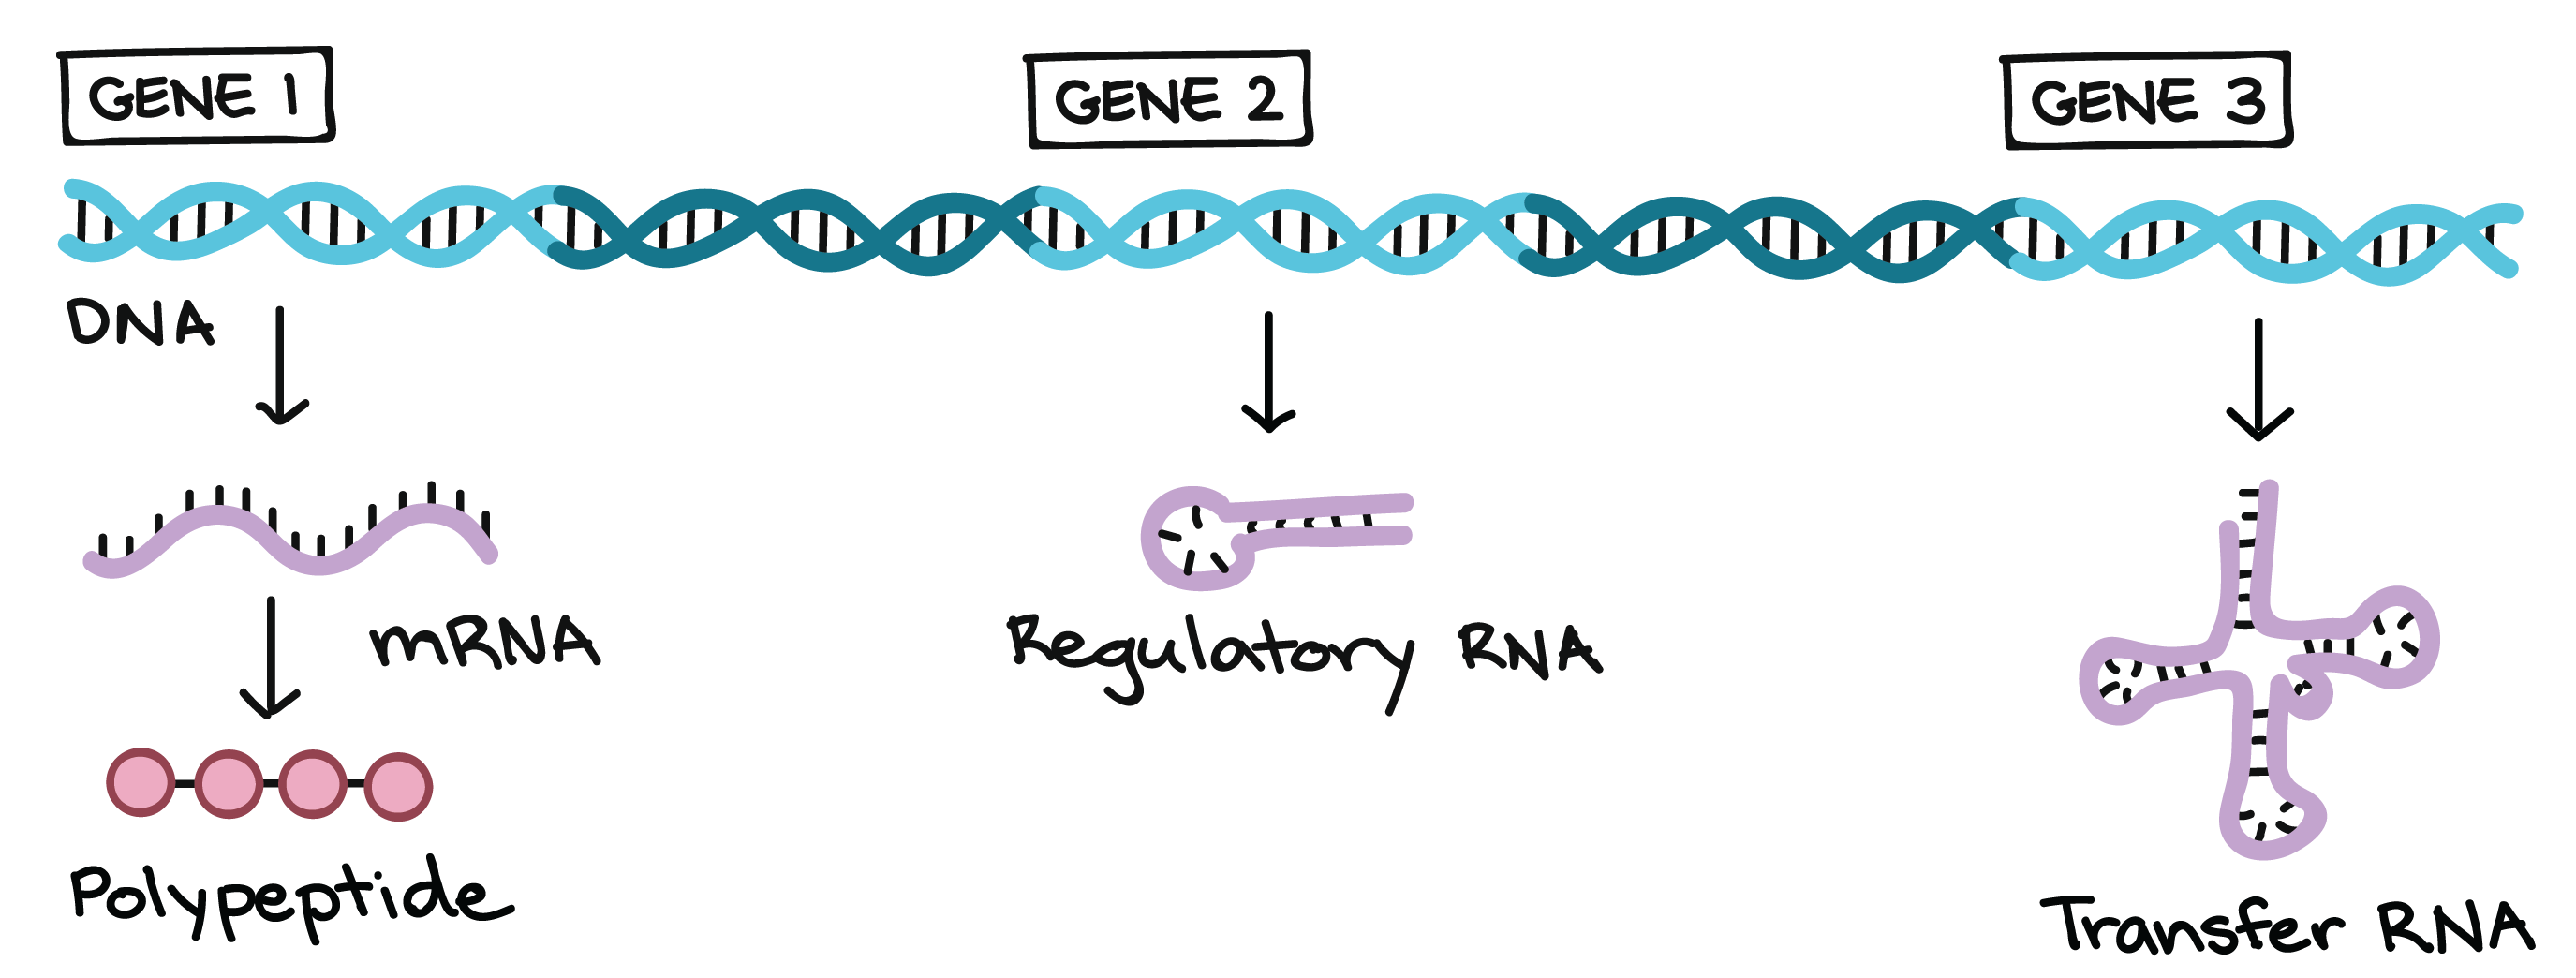 active reading identifying the genetic material answer key